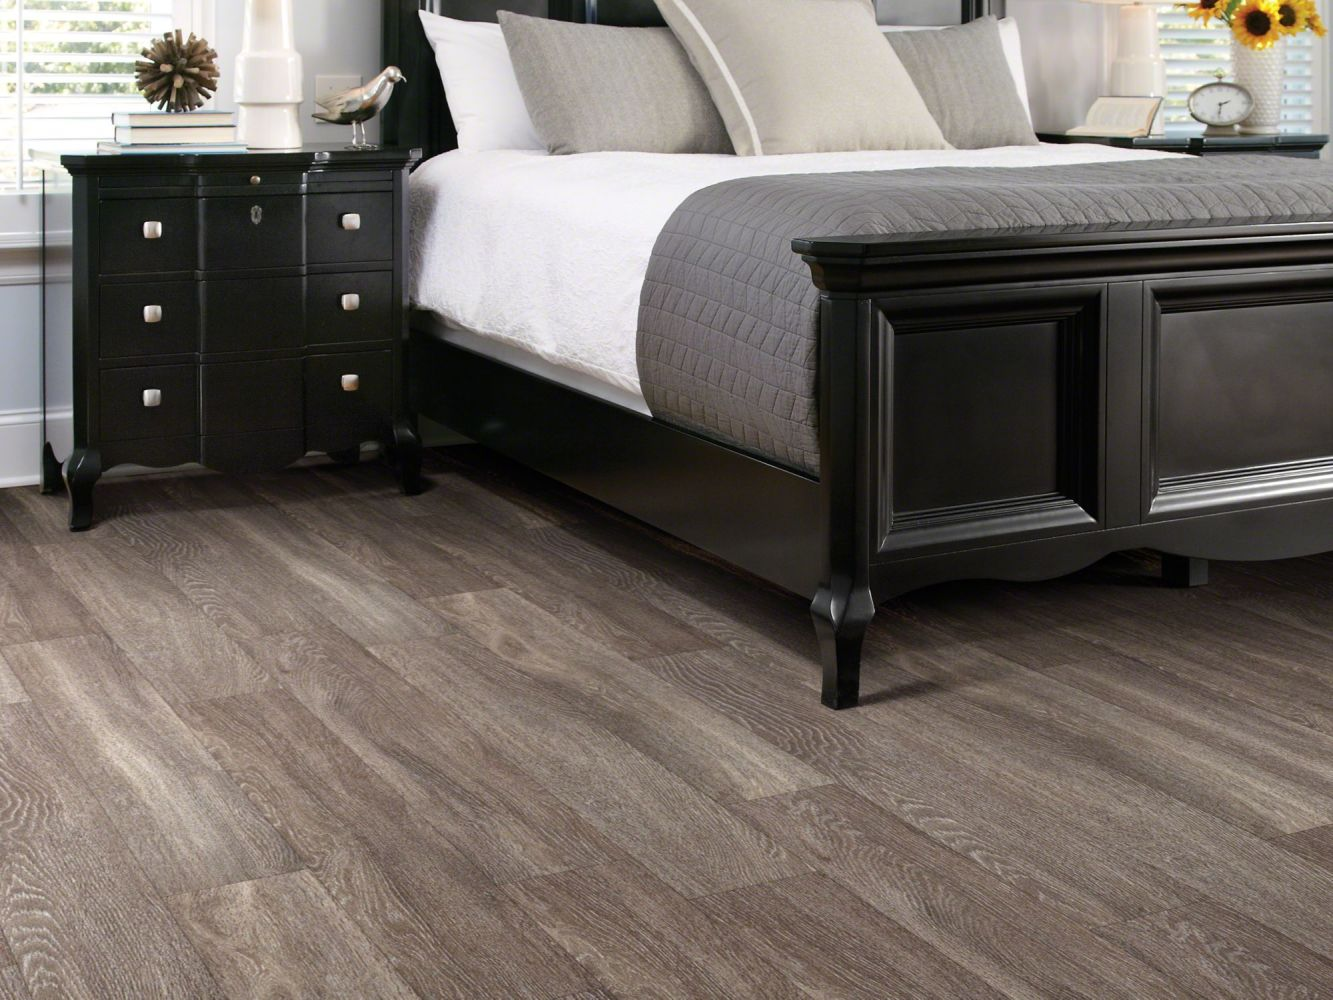 Shaw Floors Vinyl Residential World's Fair 12mil Dublin 00763_0319V